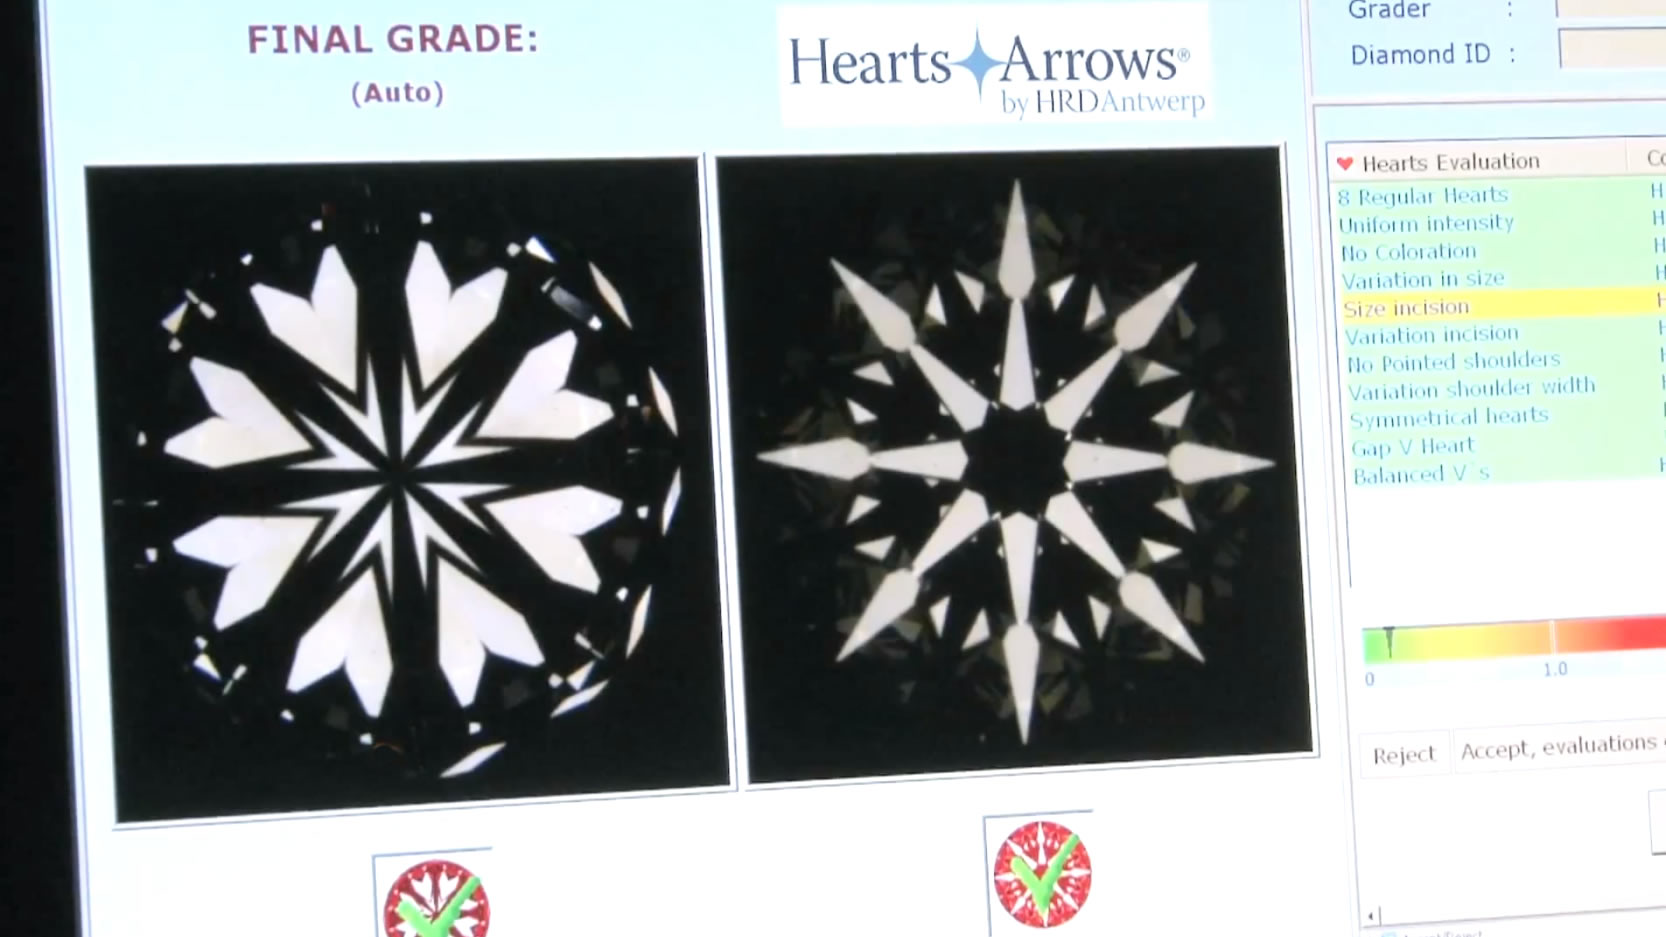 Hearts and Arrows, what is it?